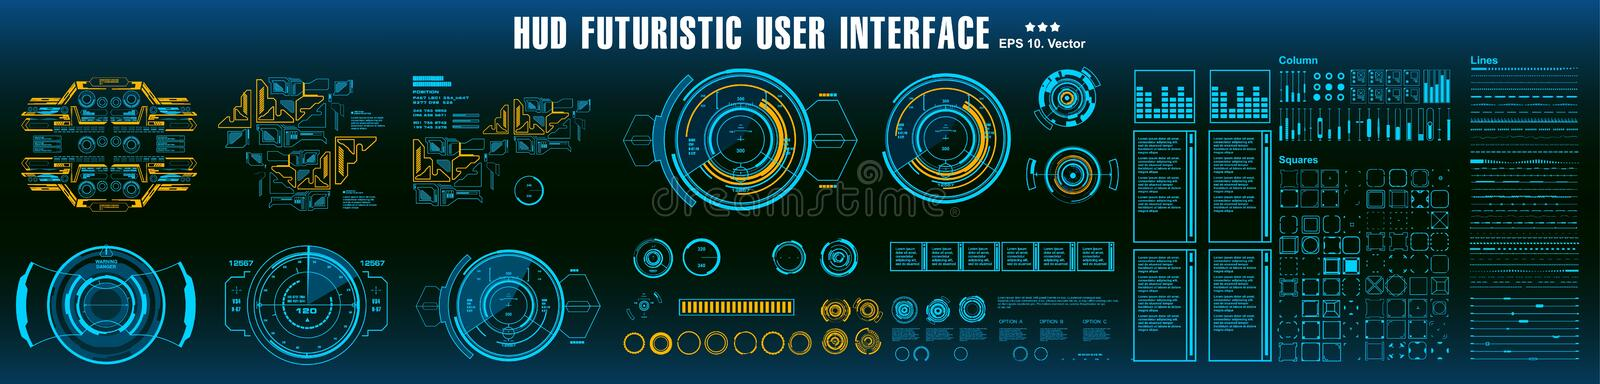 HUD elements mega set pack. Dashboard display virtual reality technology screen. Futuristic user interface stock illustration